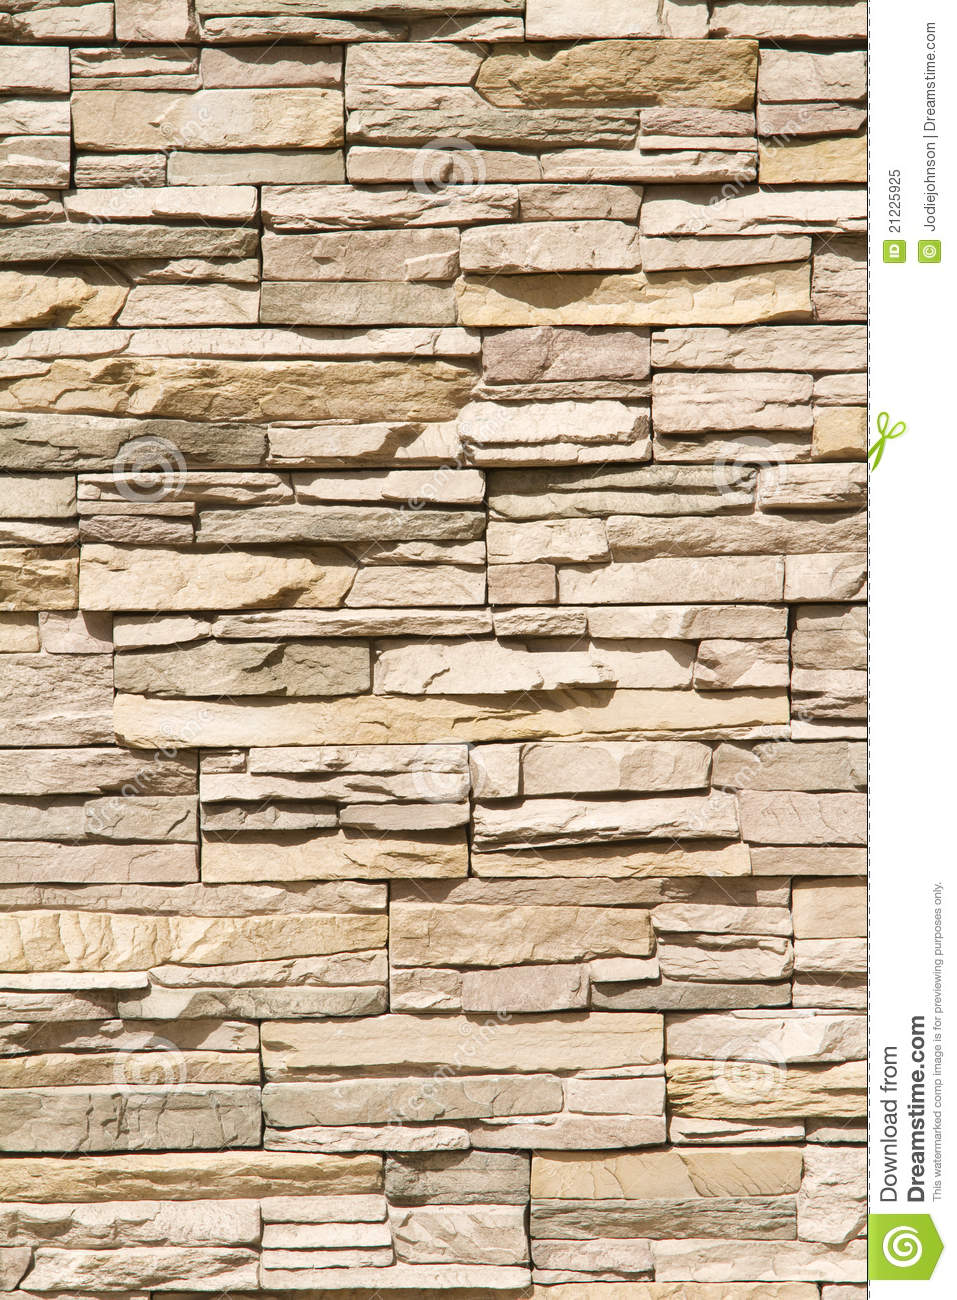 Stone Wall Background : Stacked stone wall background vertical stock image